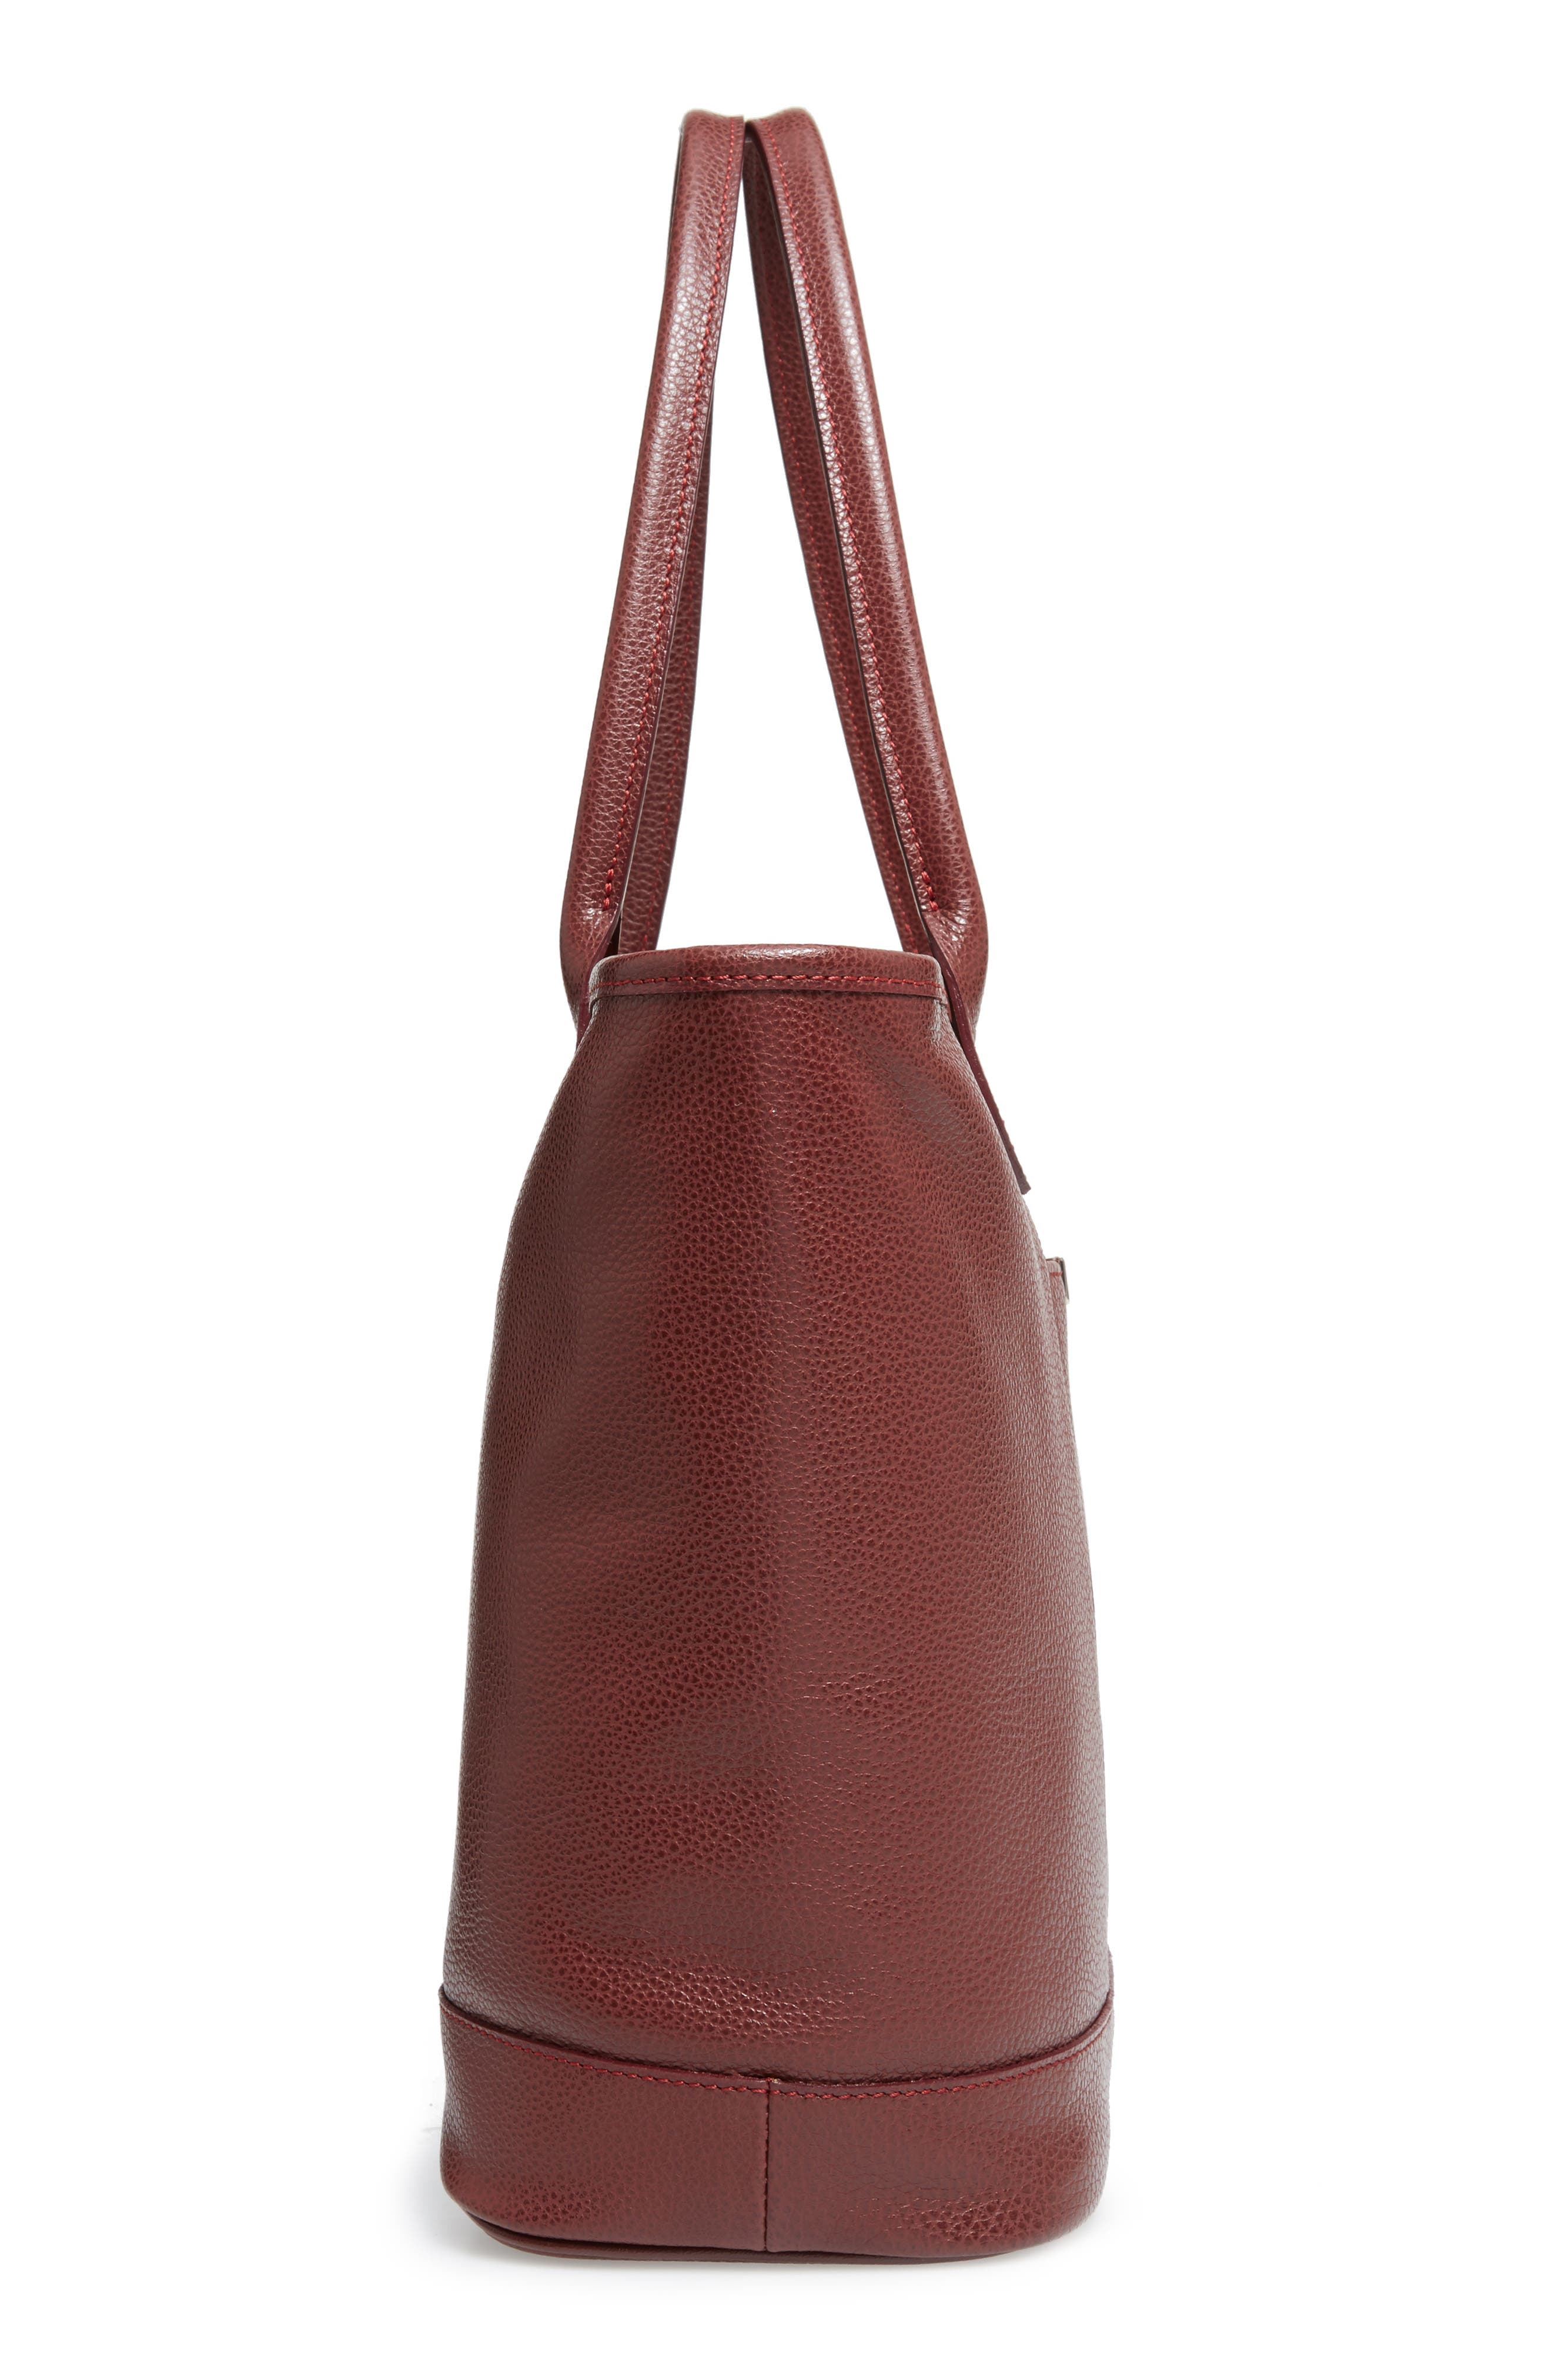 'Veau' Leather Tote,                             Alternate thumbnail 5, color,                             Red Lacquer